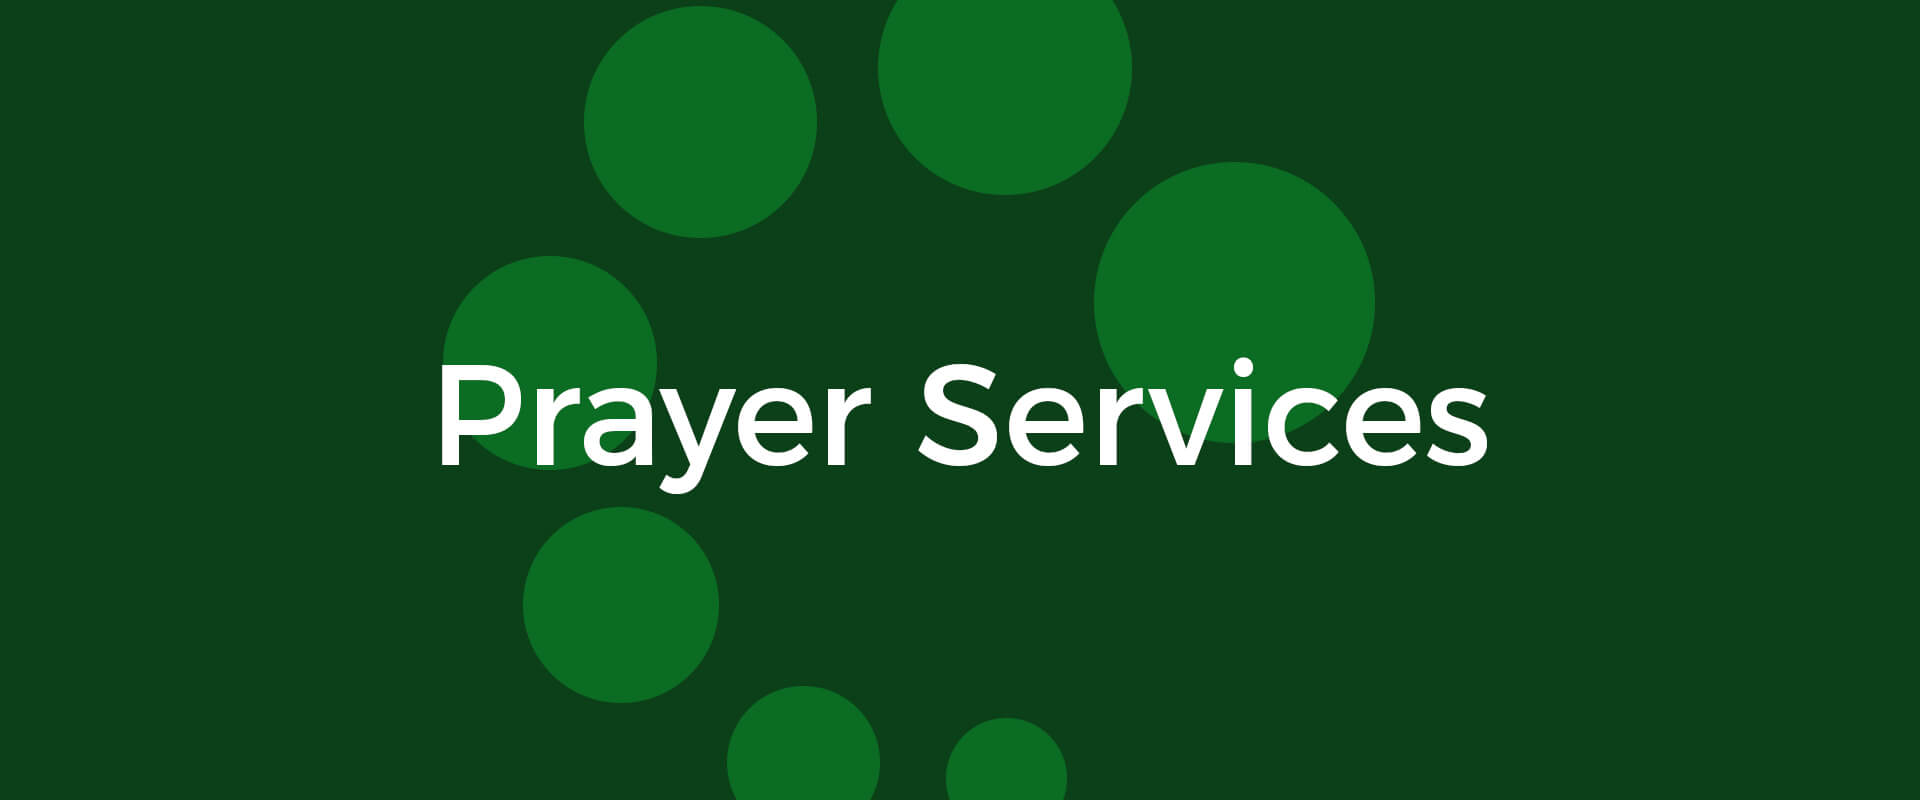 prayerservices